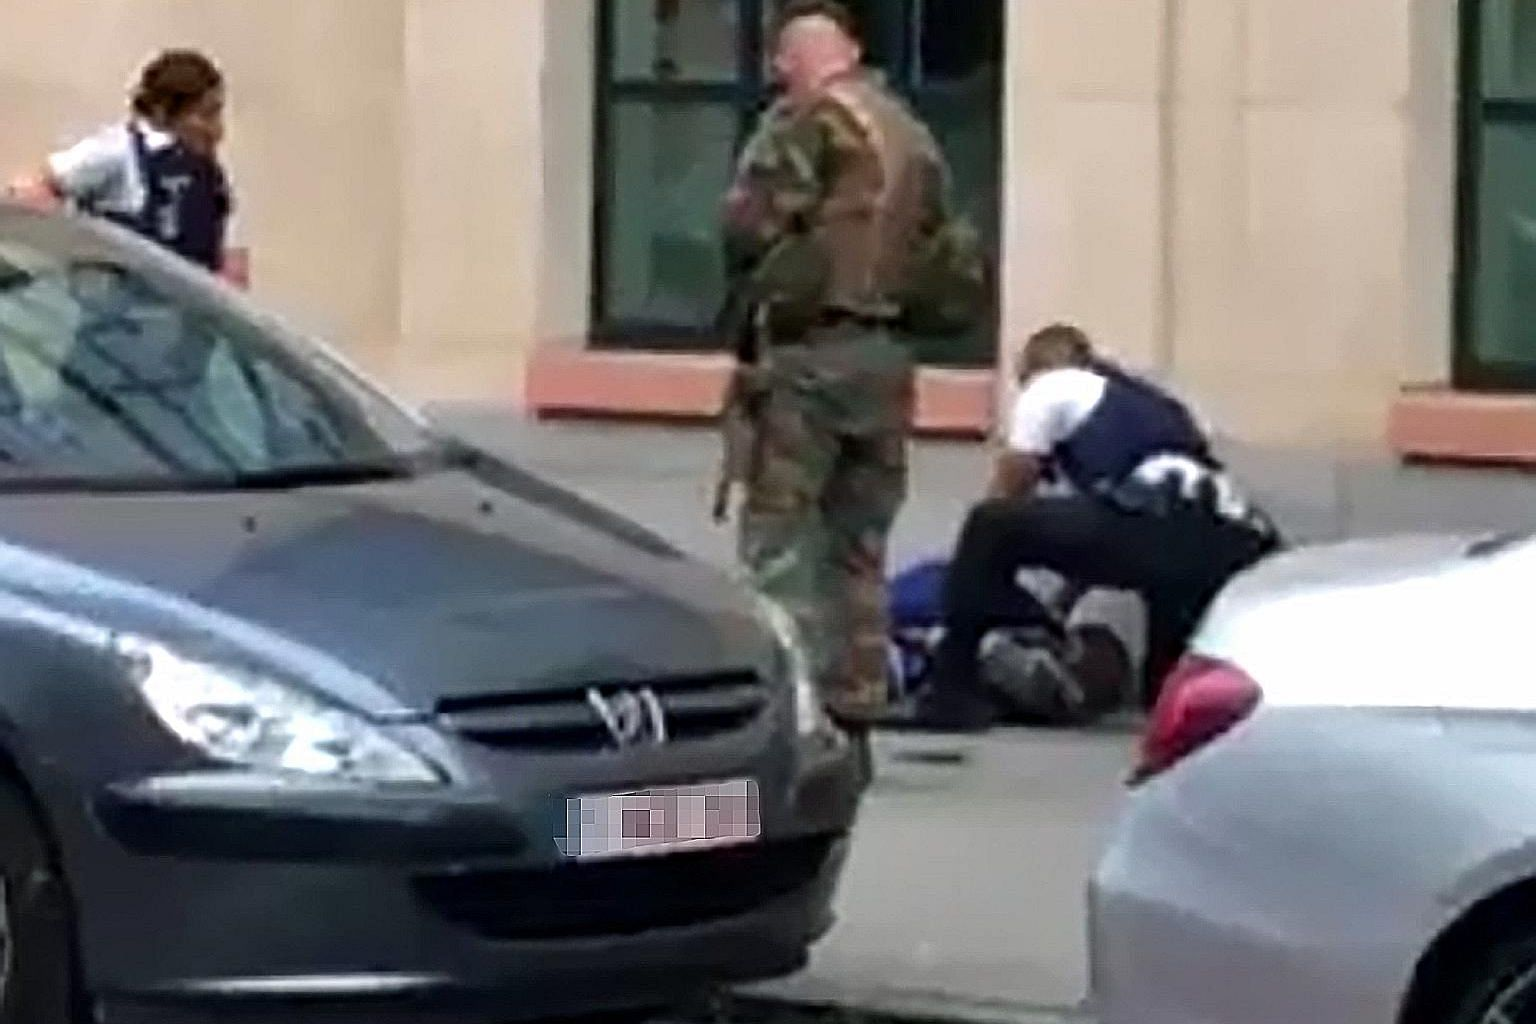 The man who allegedly wounded a soldier with a knife on Friday night in central Brussels lying on the ground after being shot. Police also found a replica gun and two copies of the Quran on him.